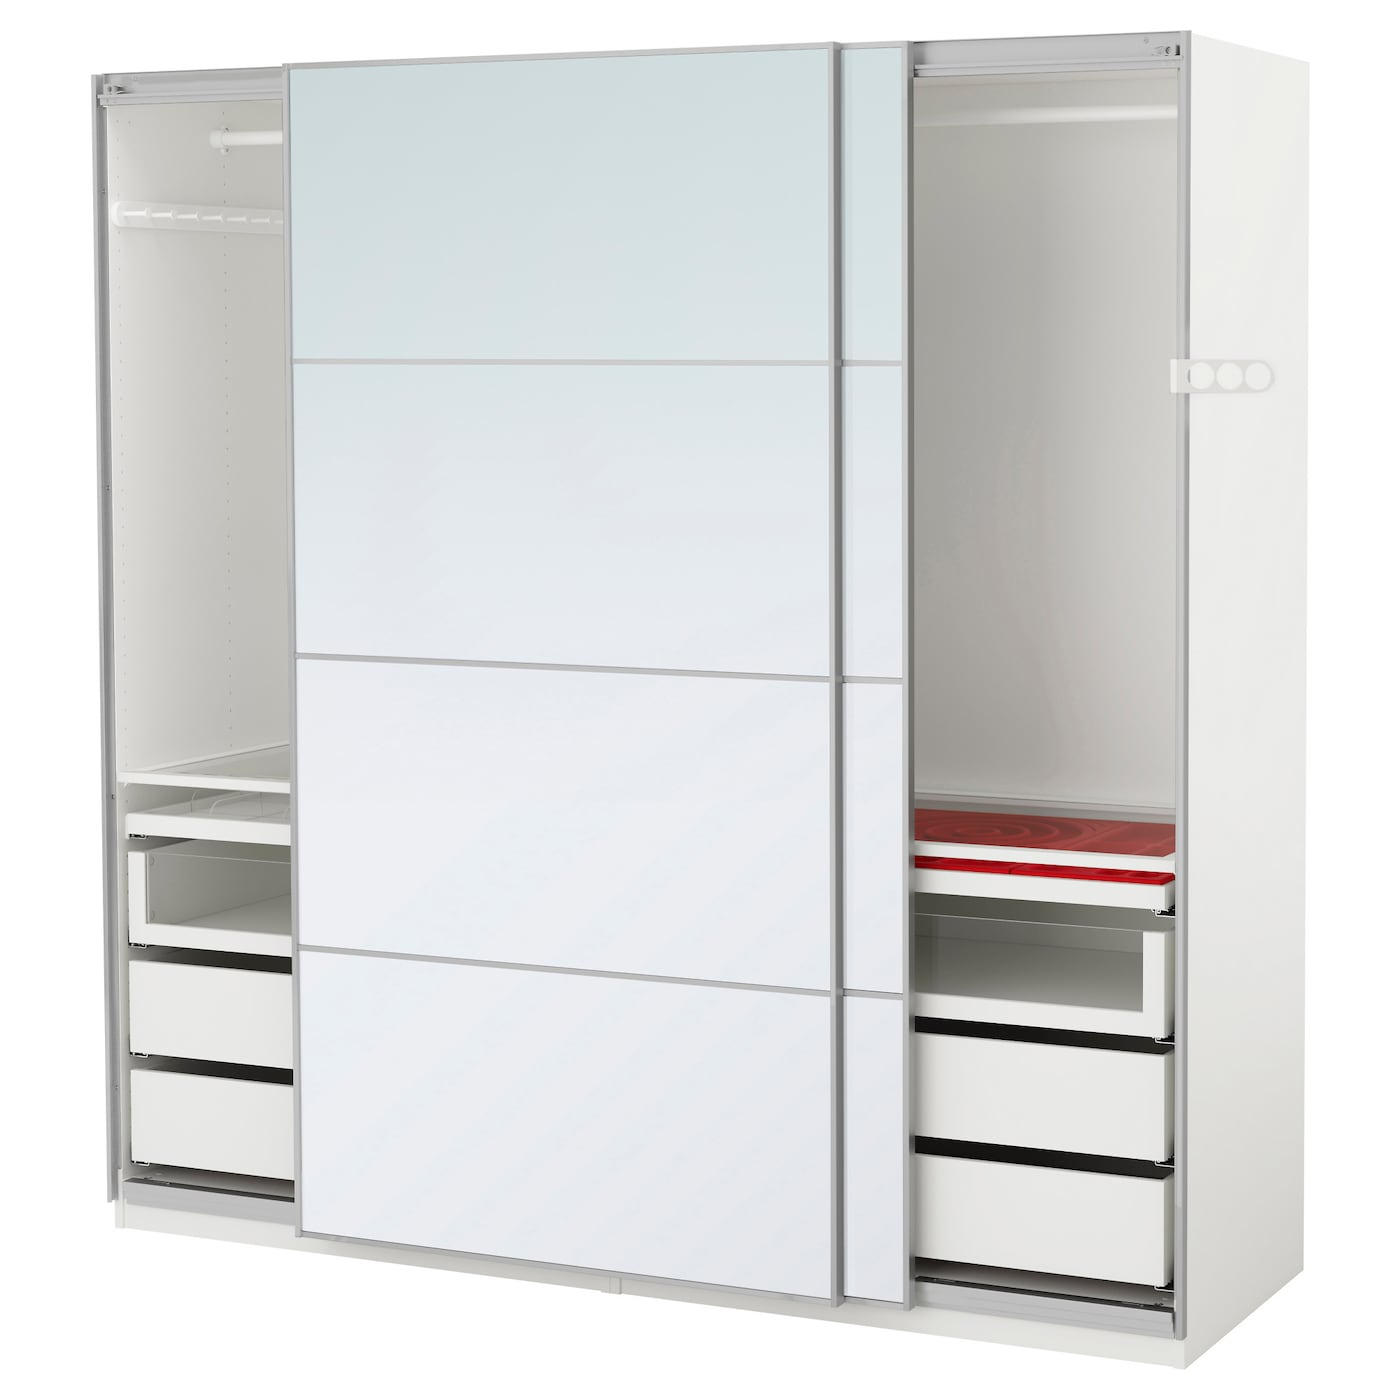 pax wardrobe white auli mirror glass 200x66x201 cm ikea